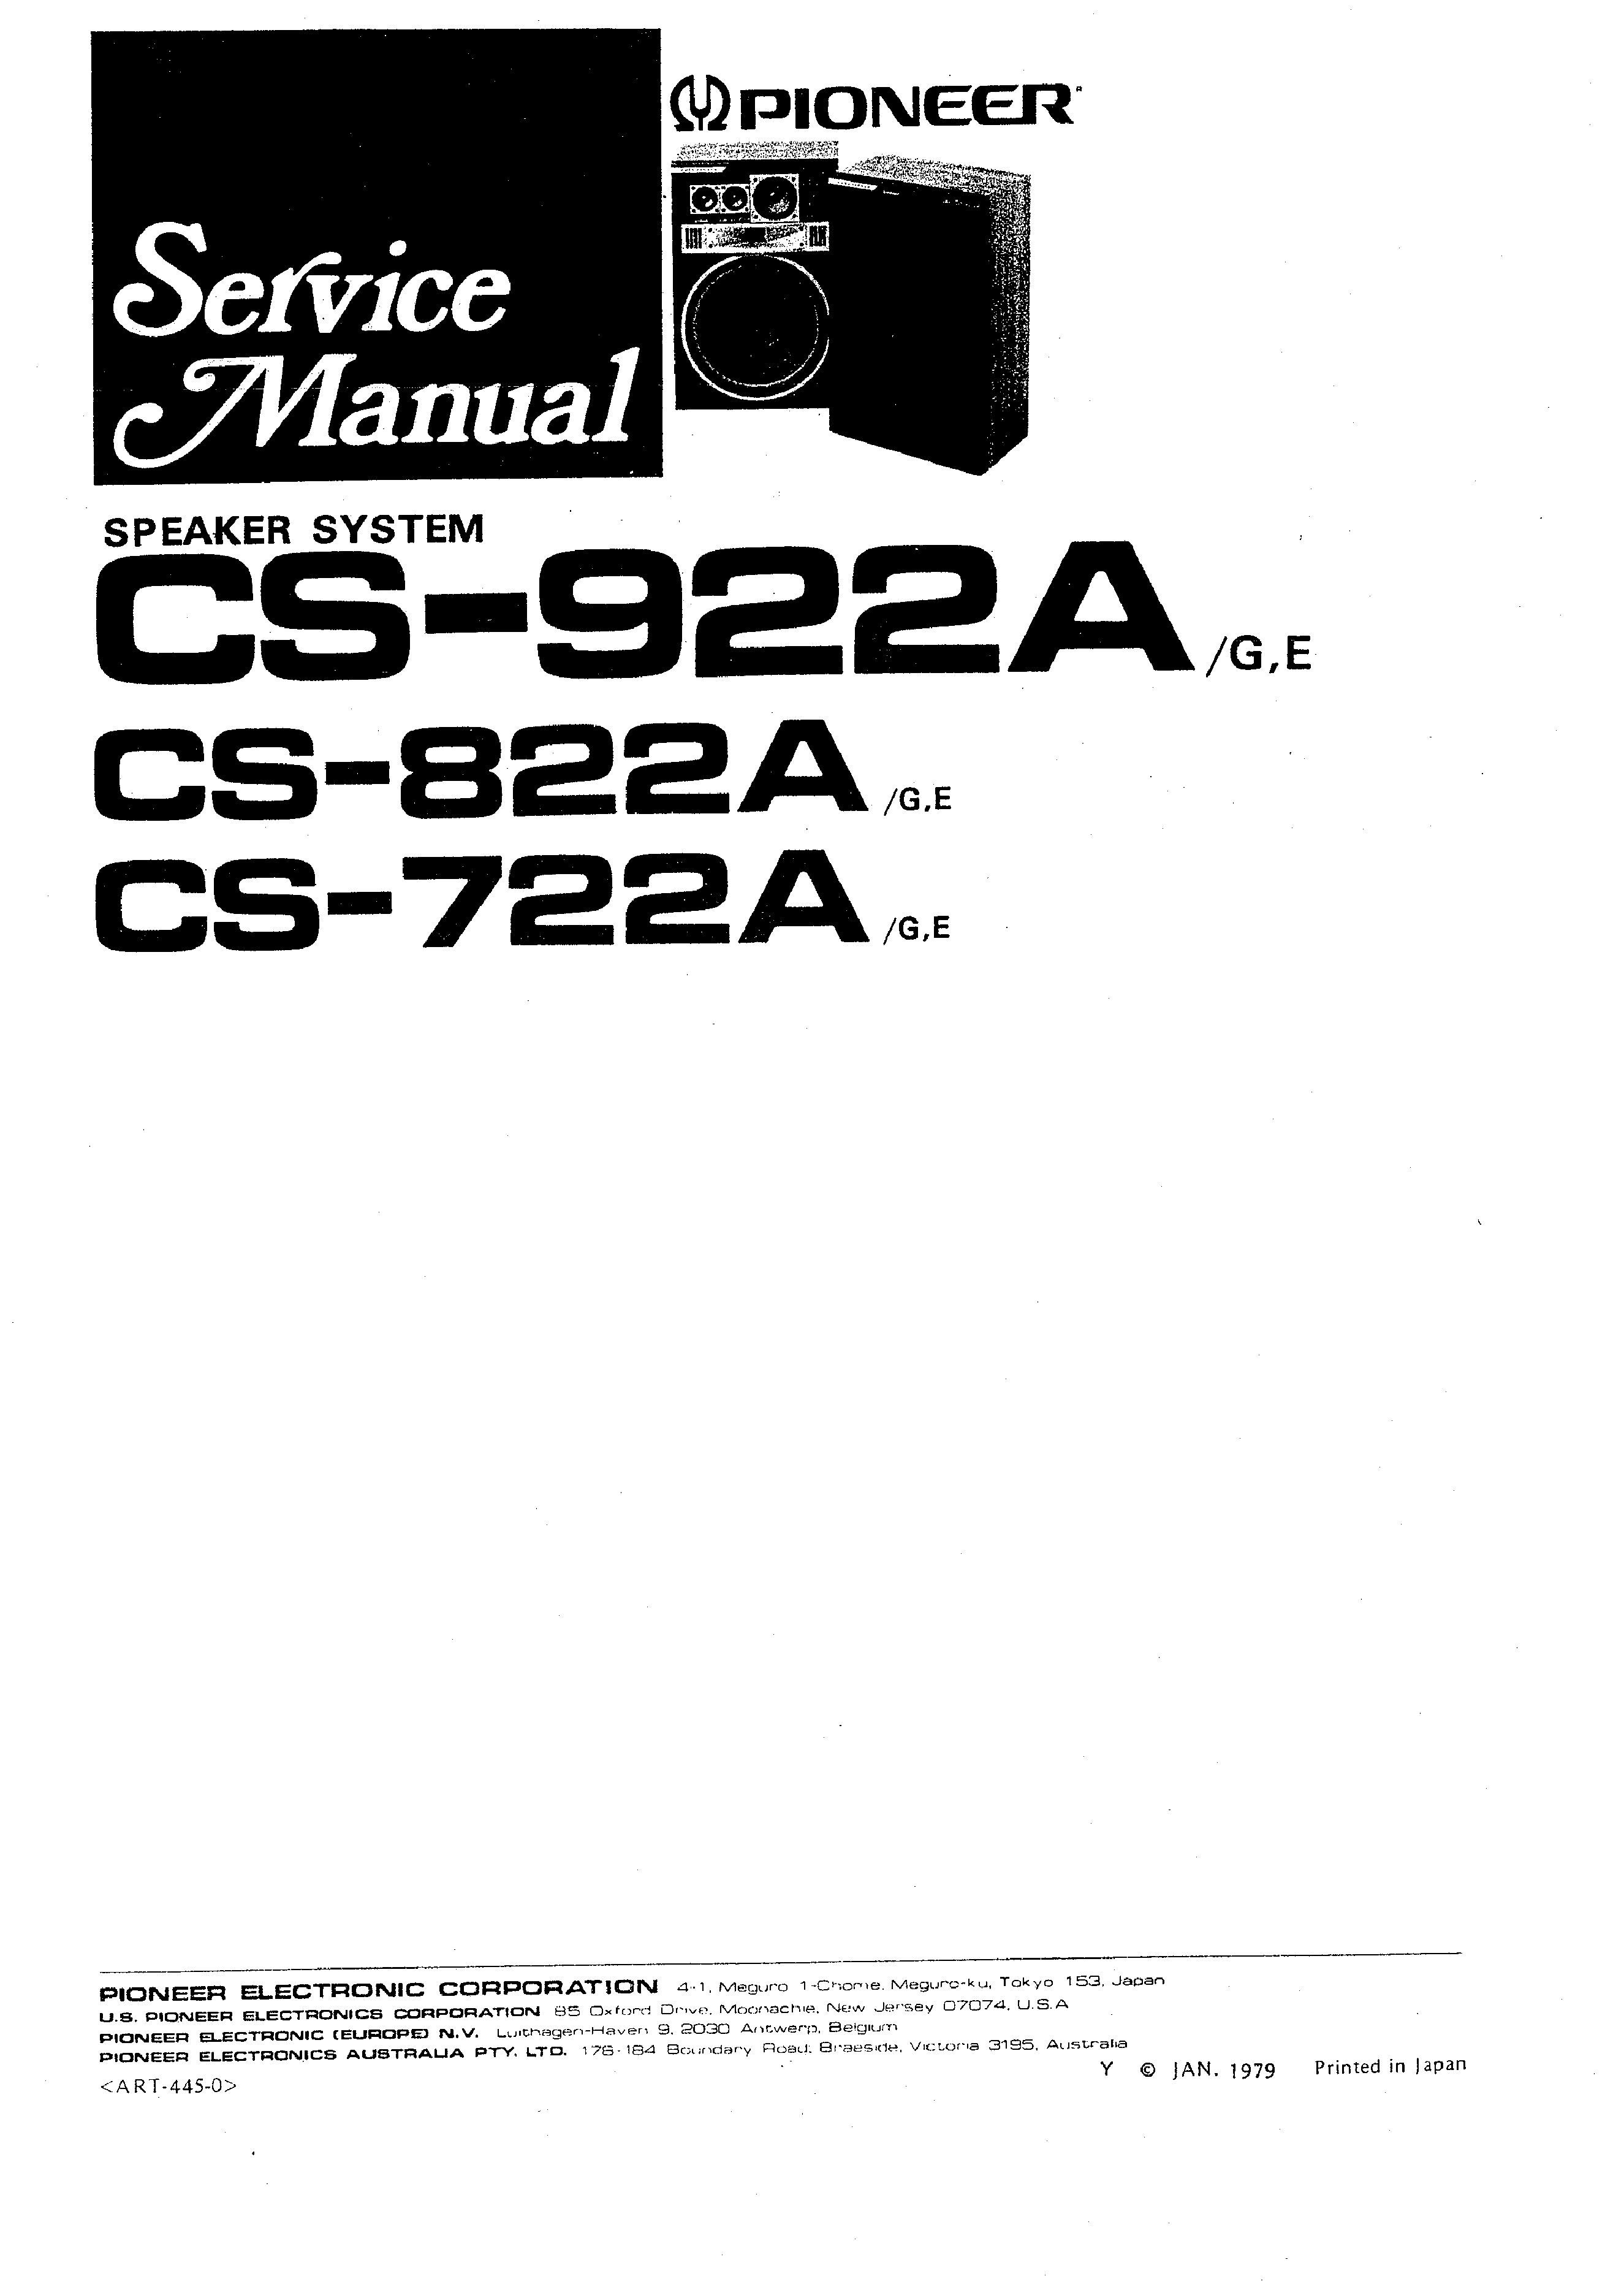 Service Manual For Pioneer Cs 922a